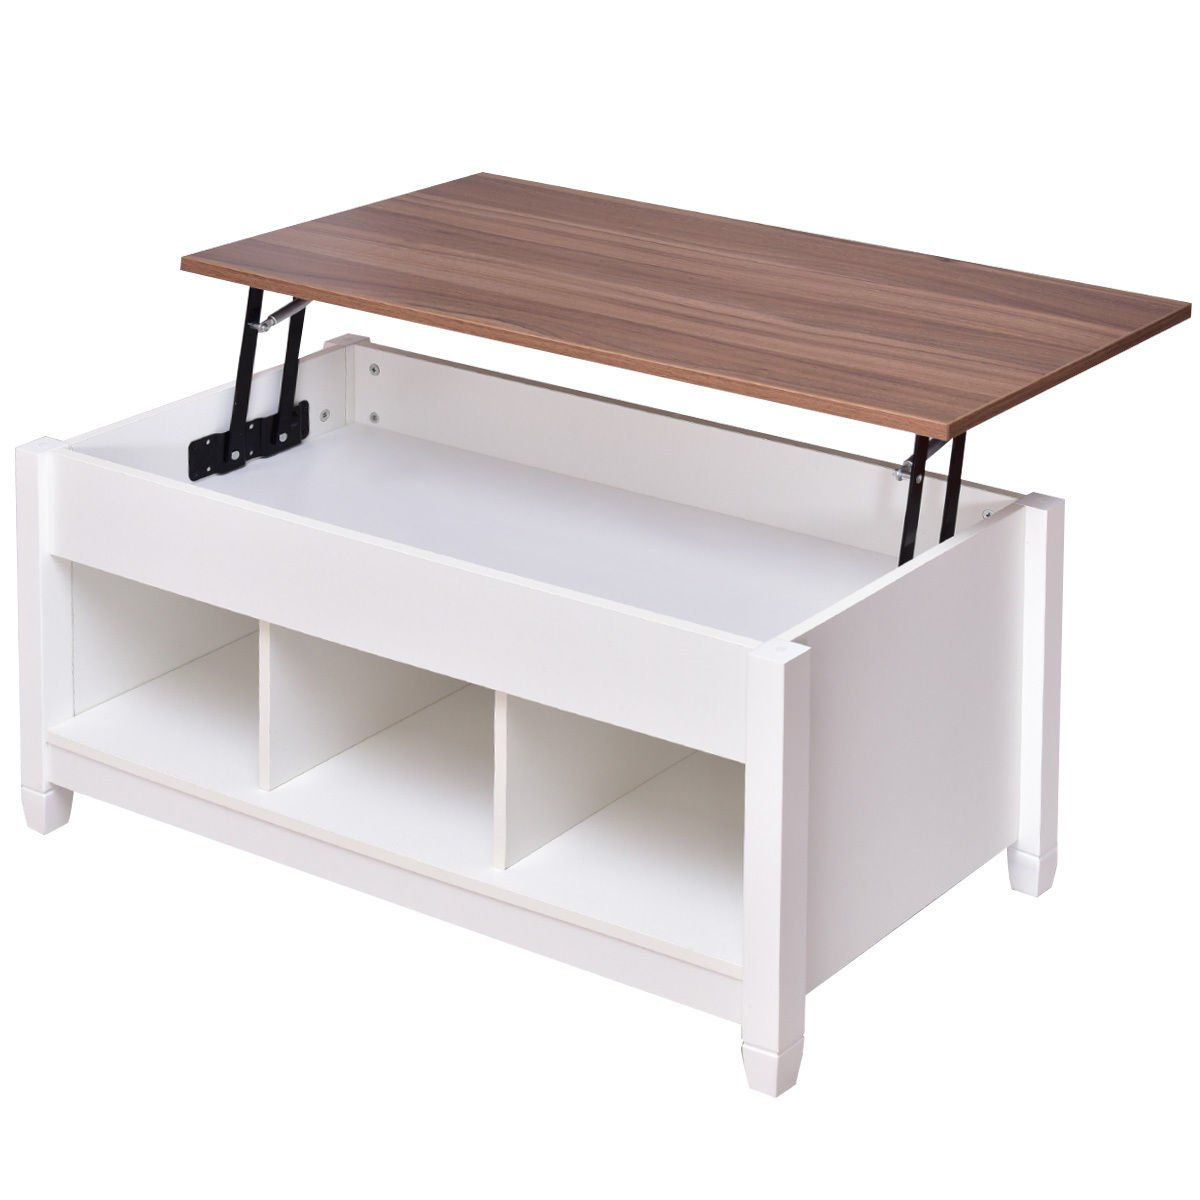 Get Quotations Tangkula Coffee Table Lift Top Wood Home Living Room Modern Storage W